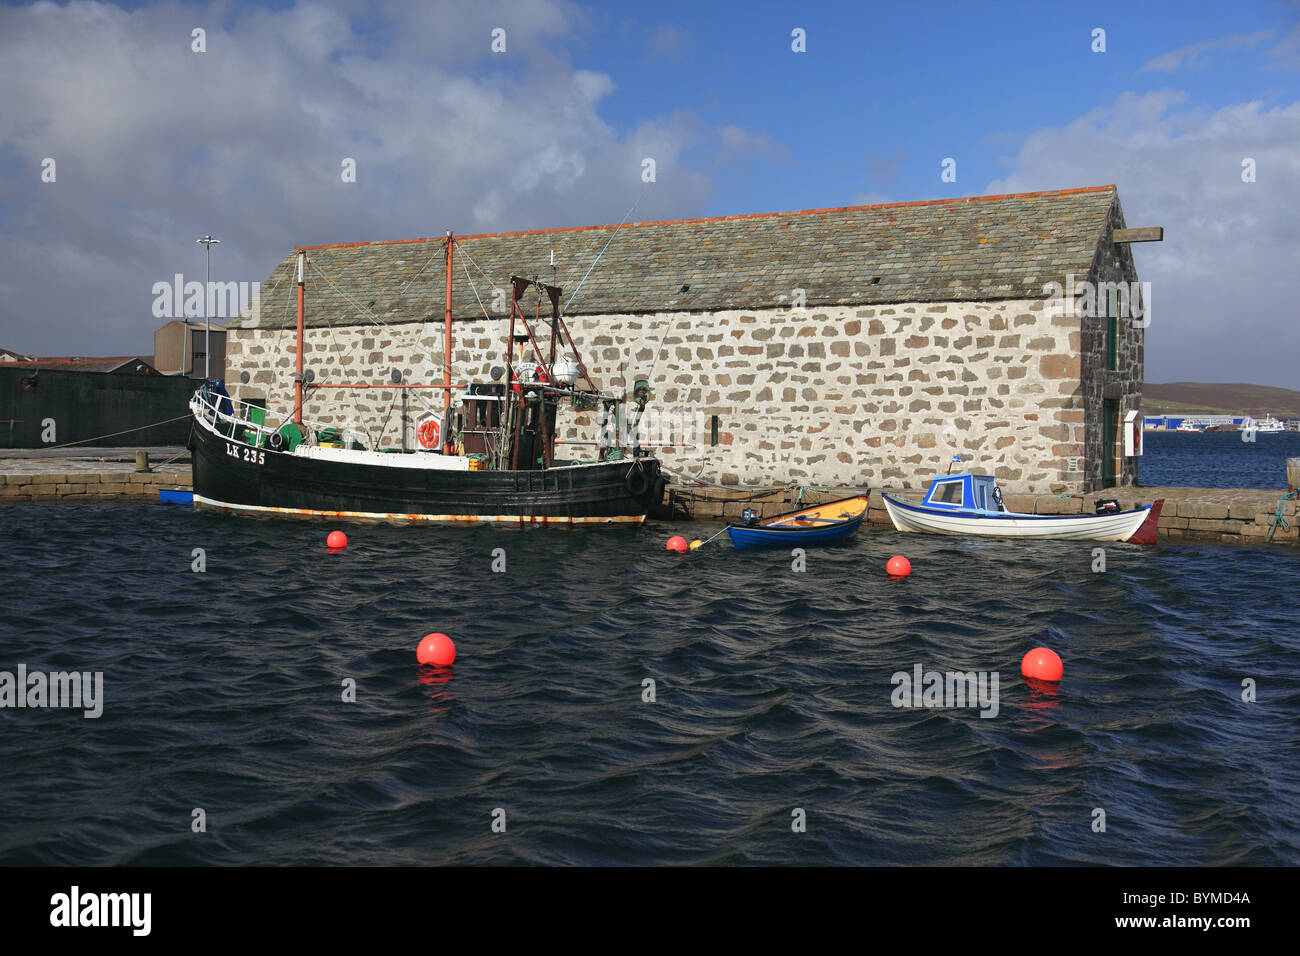 Near shore fishing vessel and small boats at hay s dock for Fishing docks near me